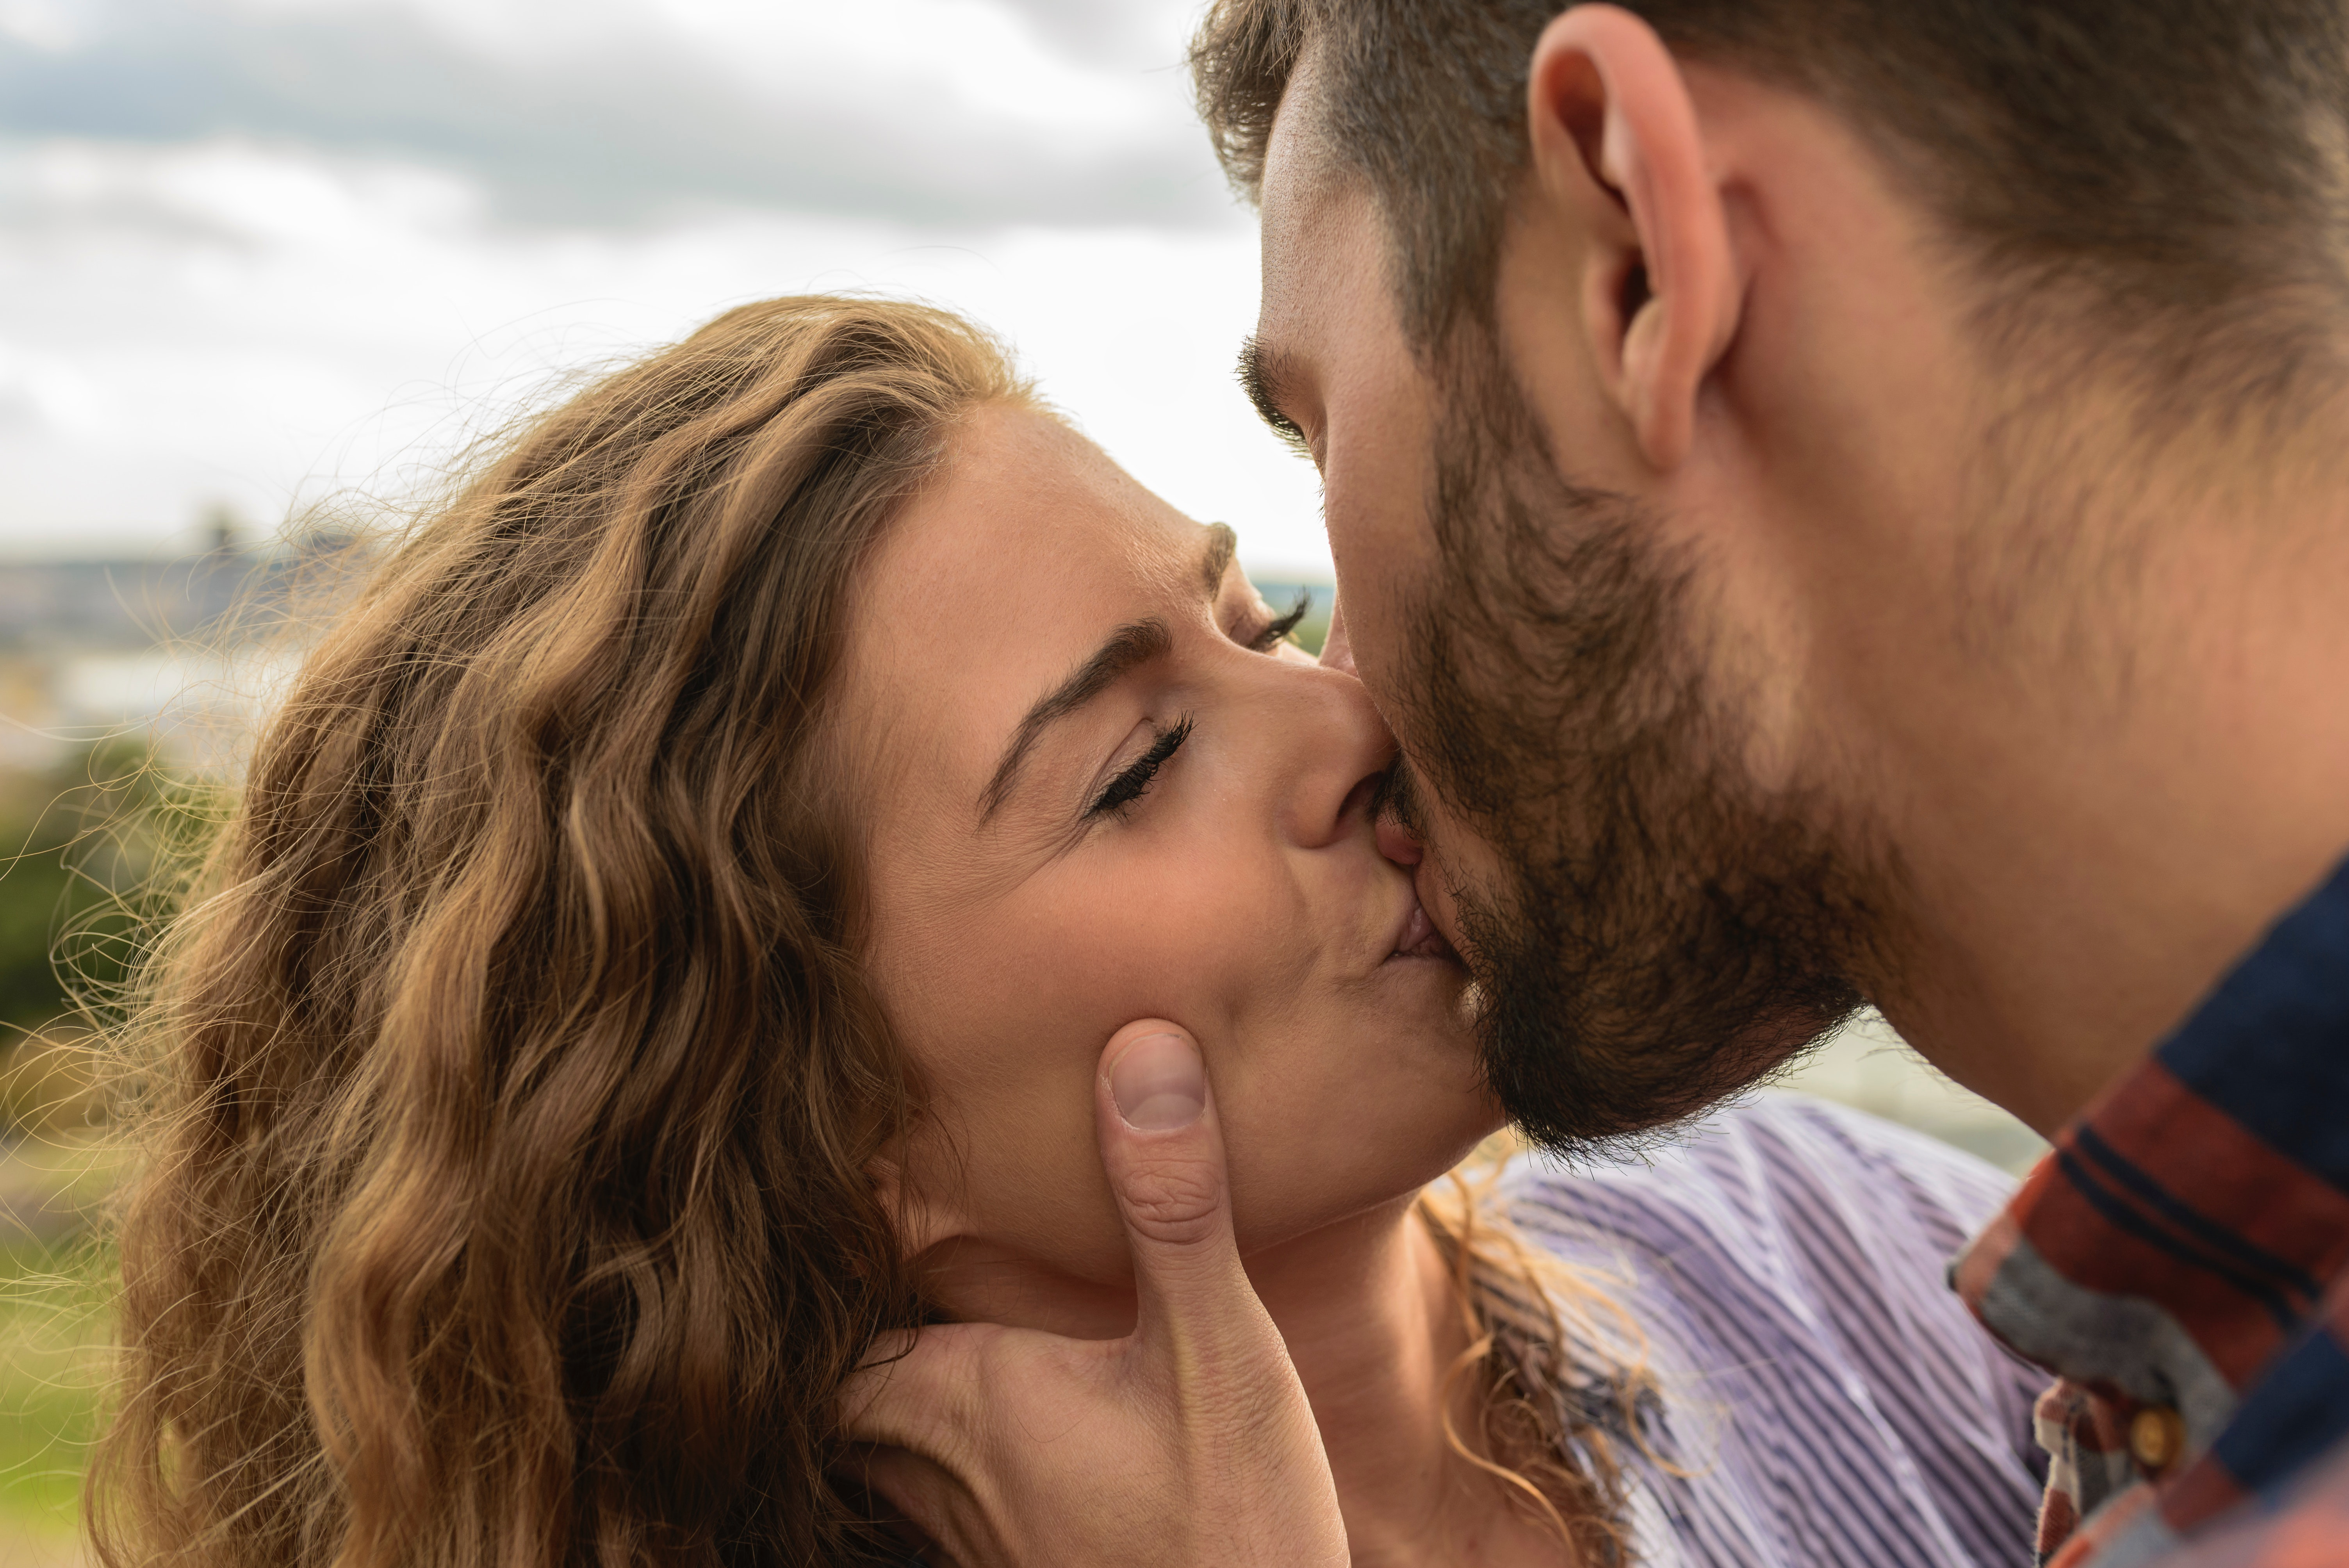 man-and-woman-kiss-each-other-984944_1.jpg